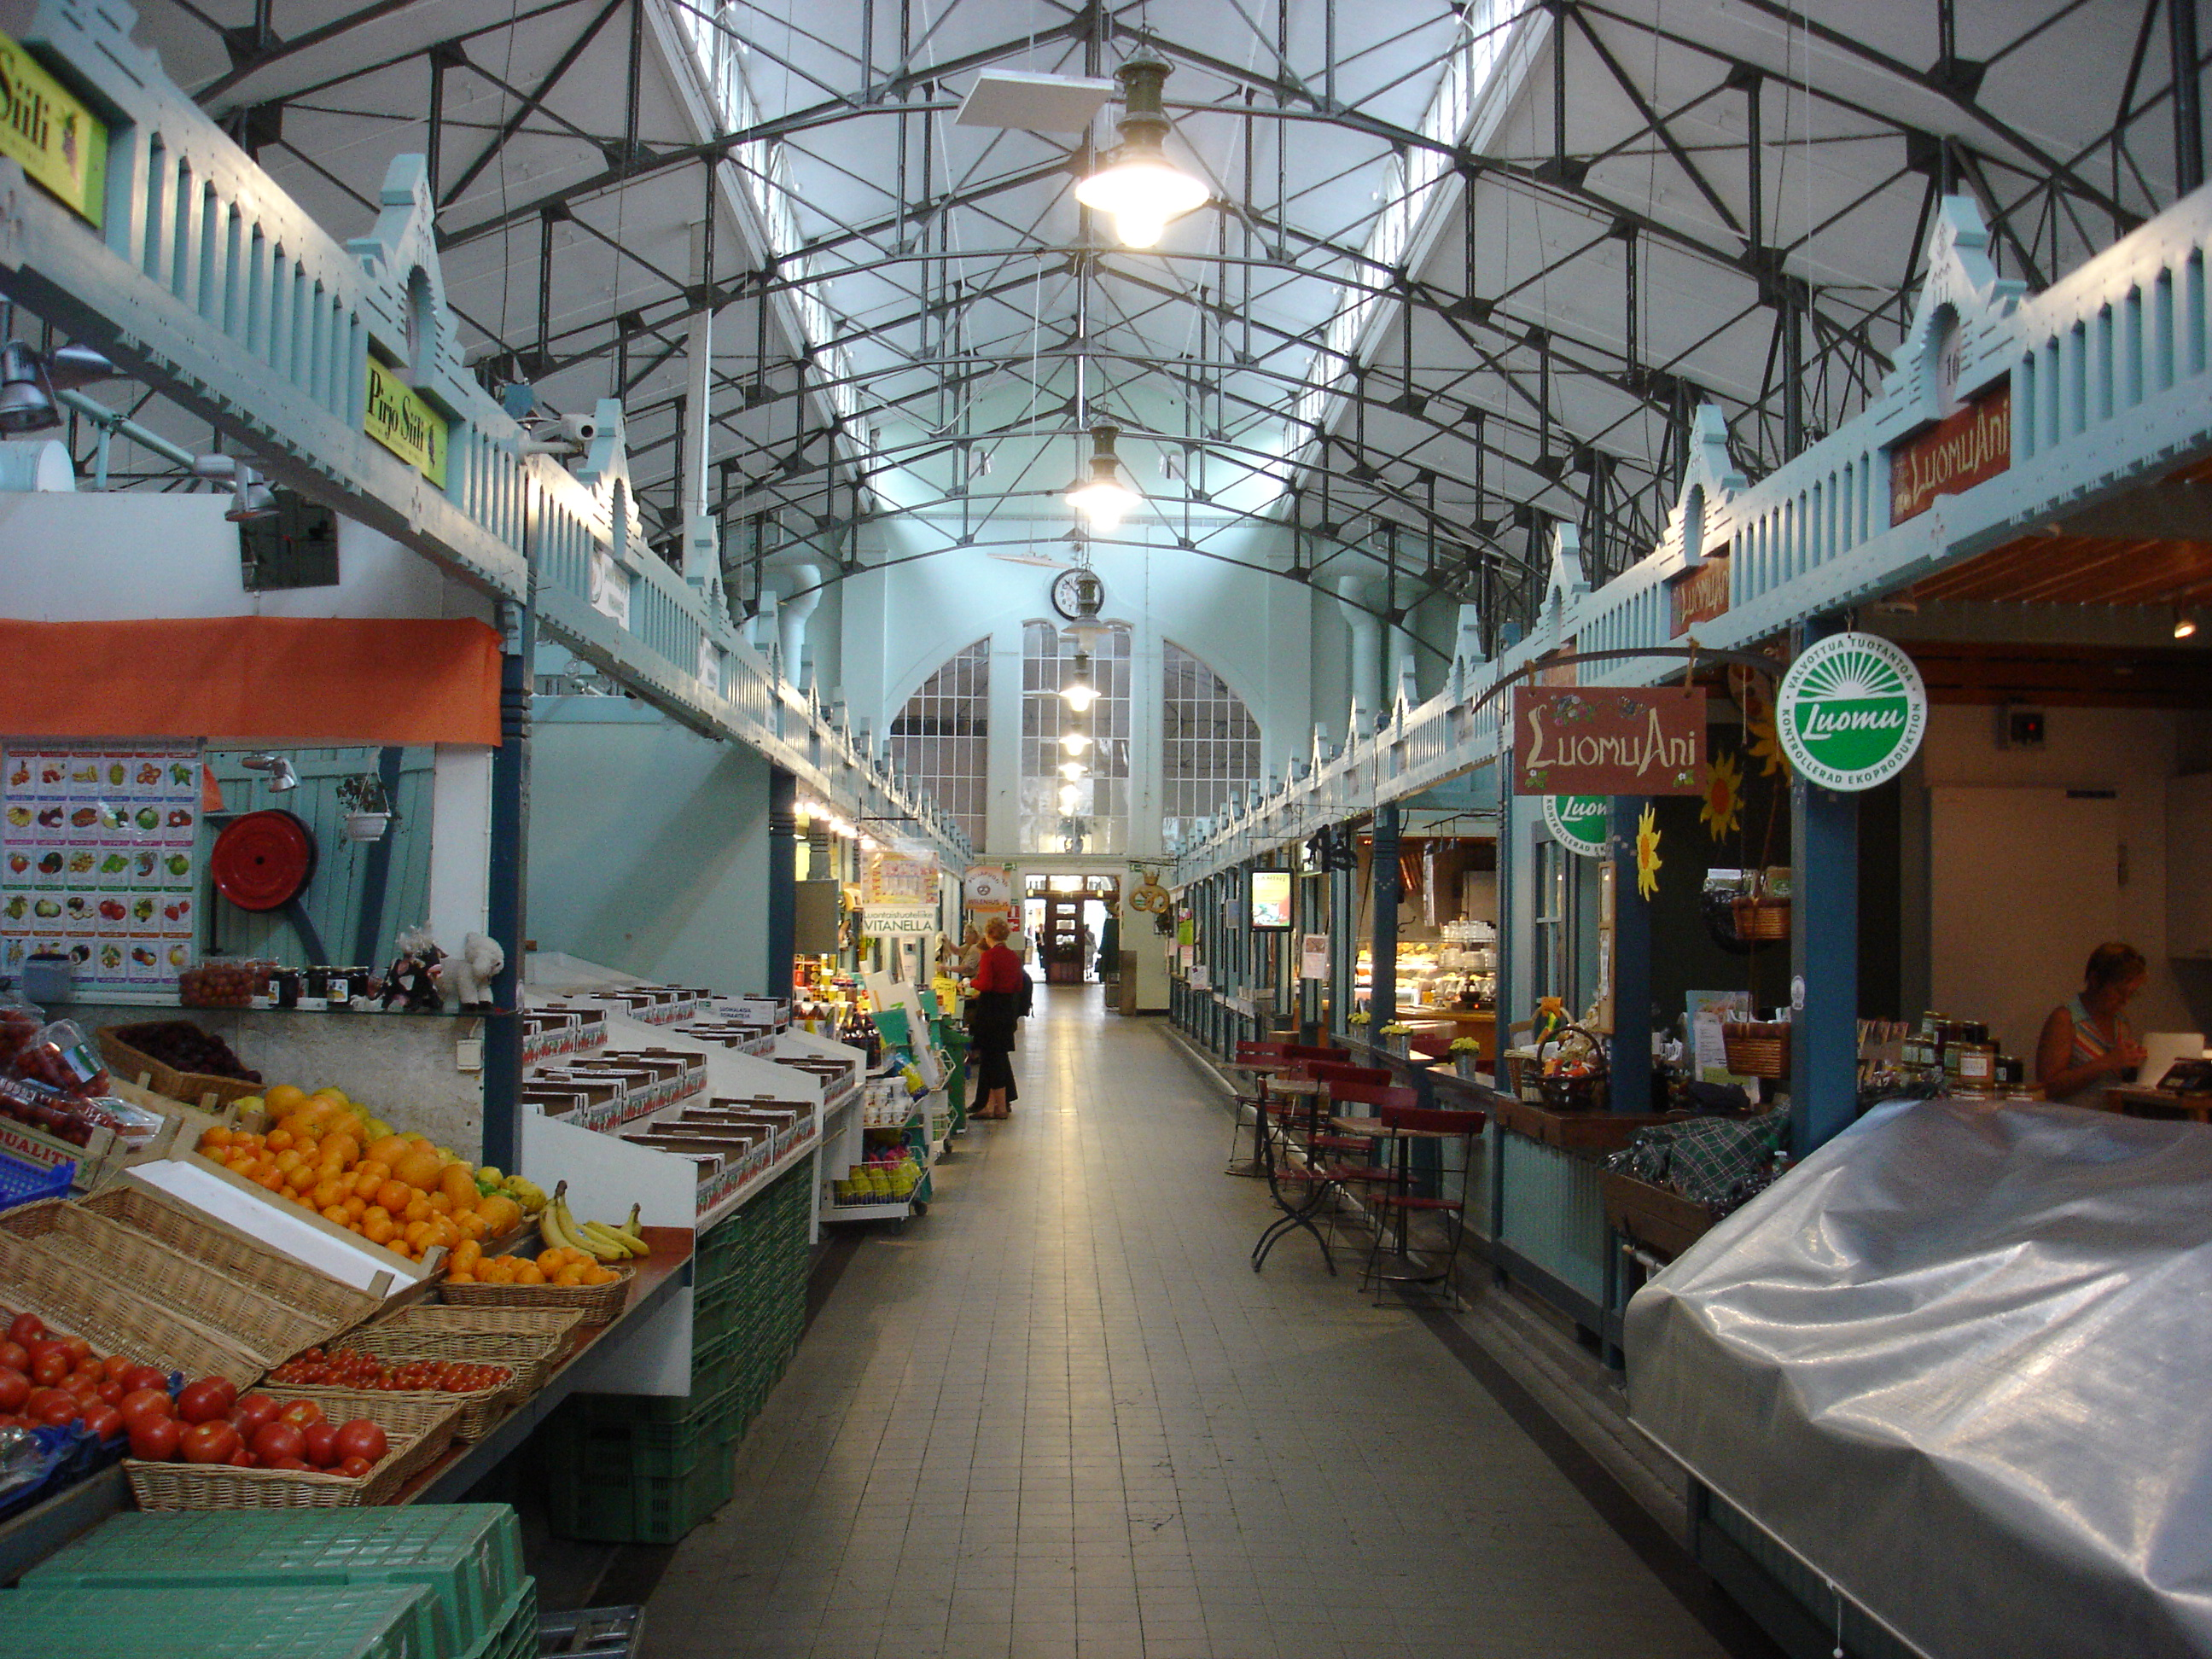 File:Tampere market hall inside.jpg - Wikimedia Commons